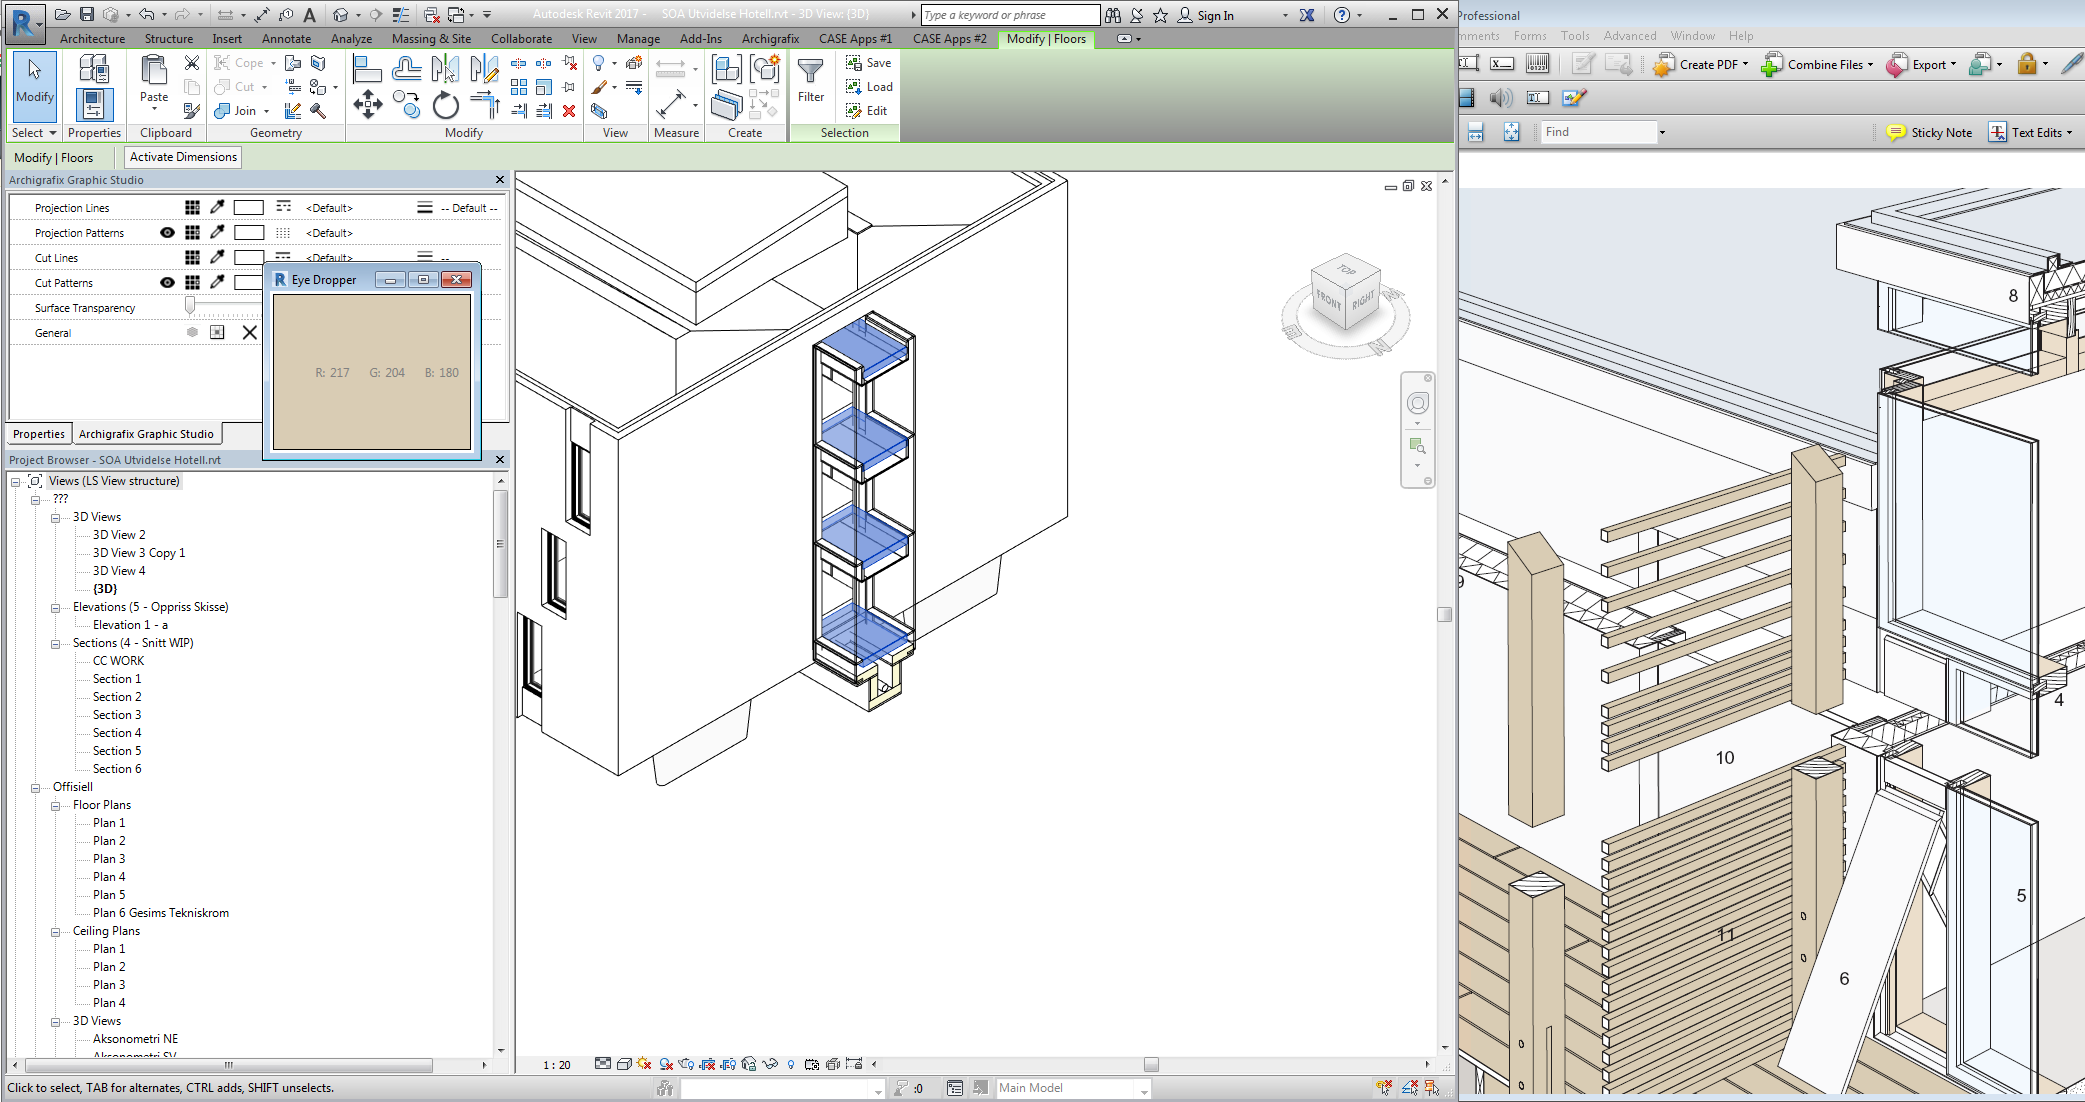 Use the eyedropper to pick colors inside Revit or from other windows. Supports multi-monitor.